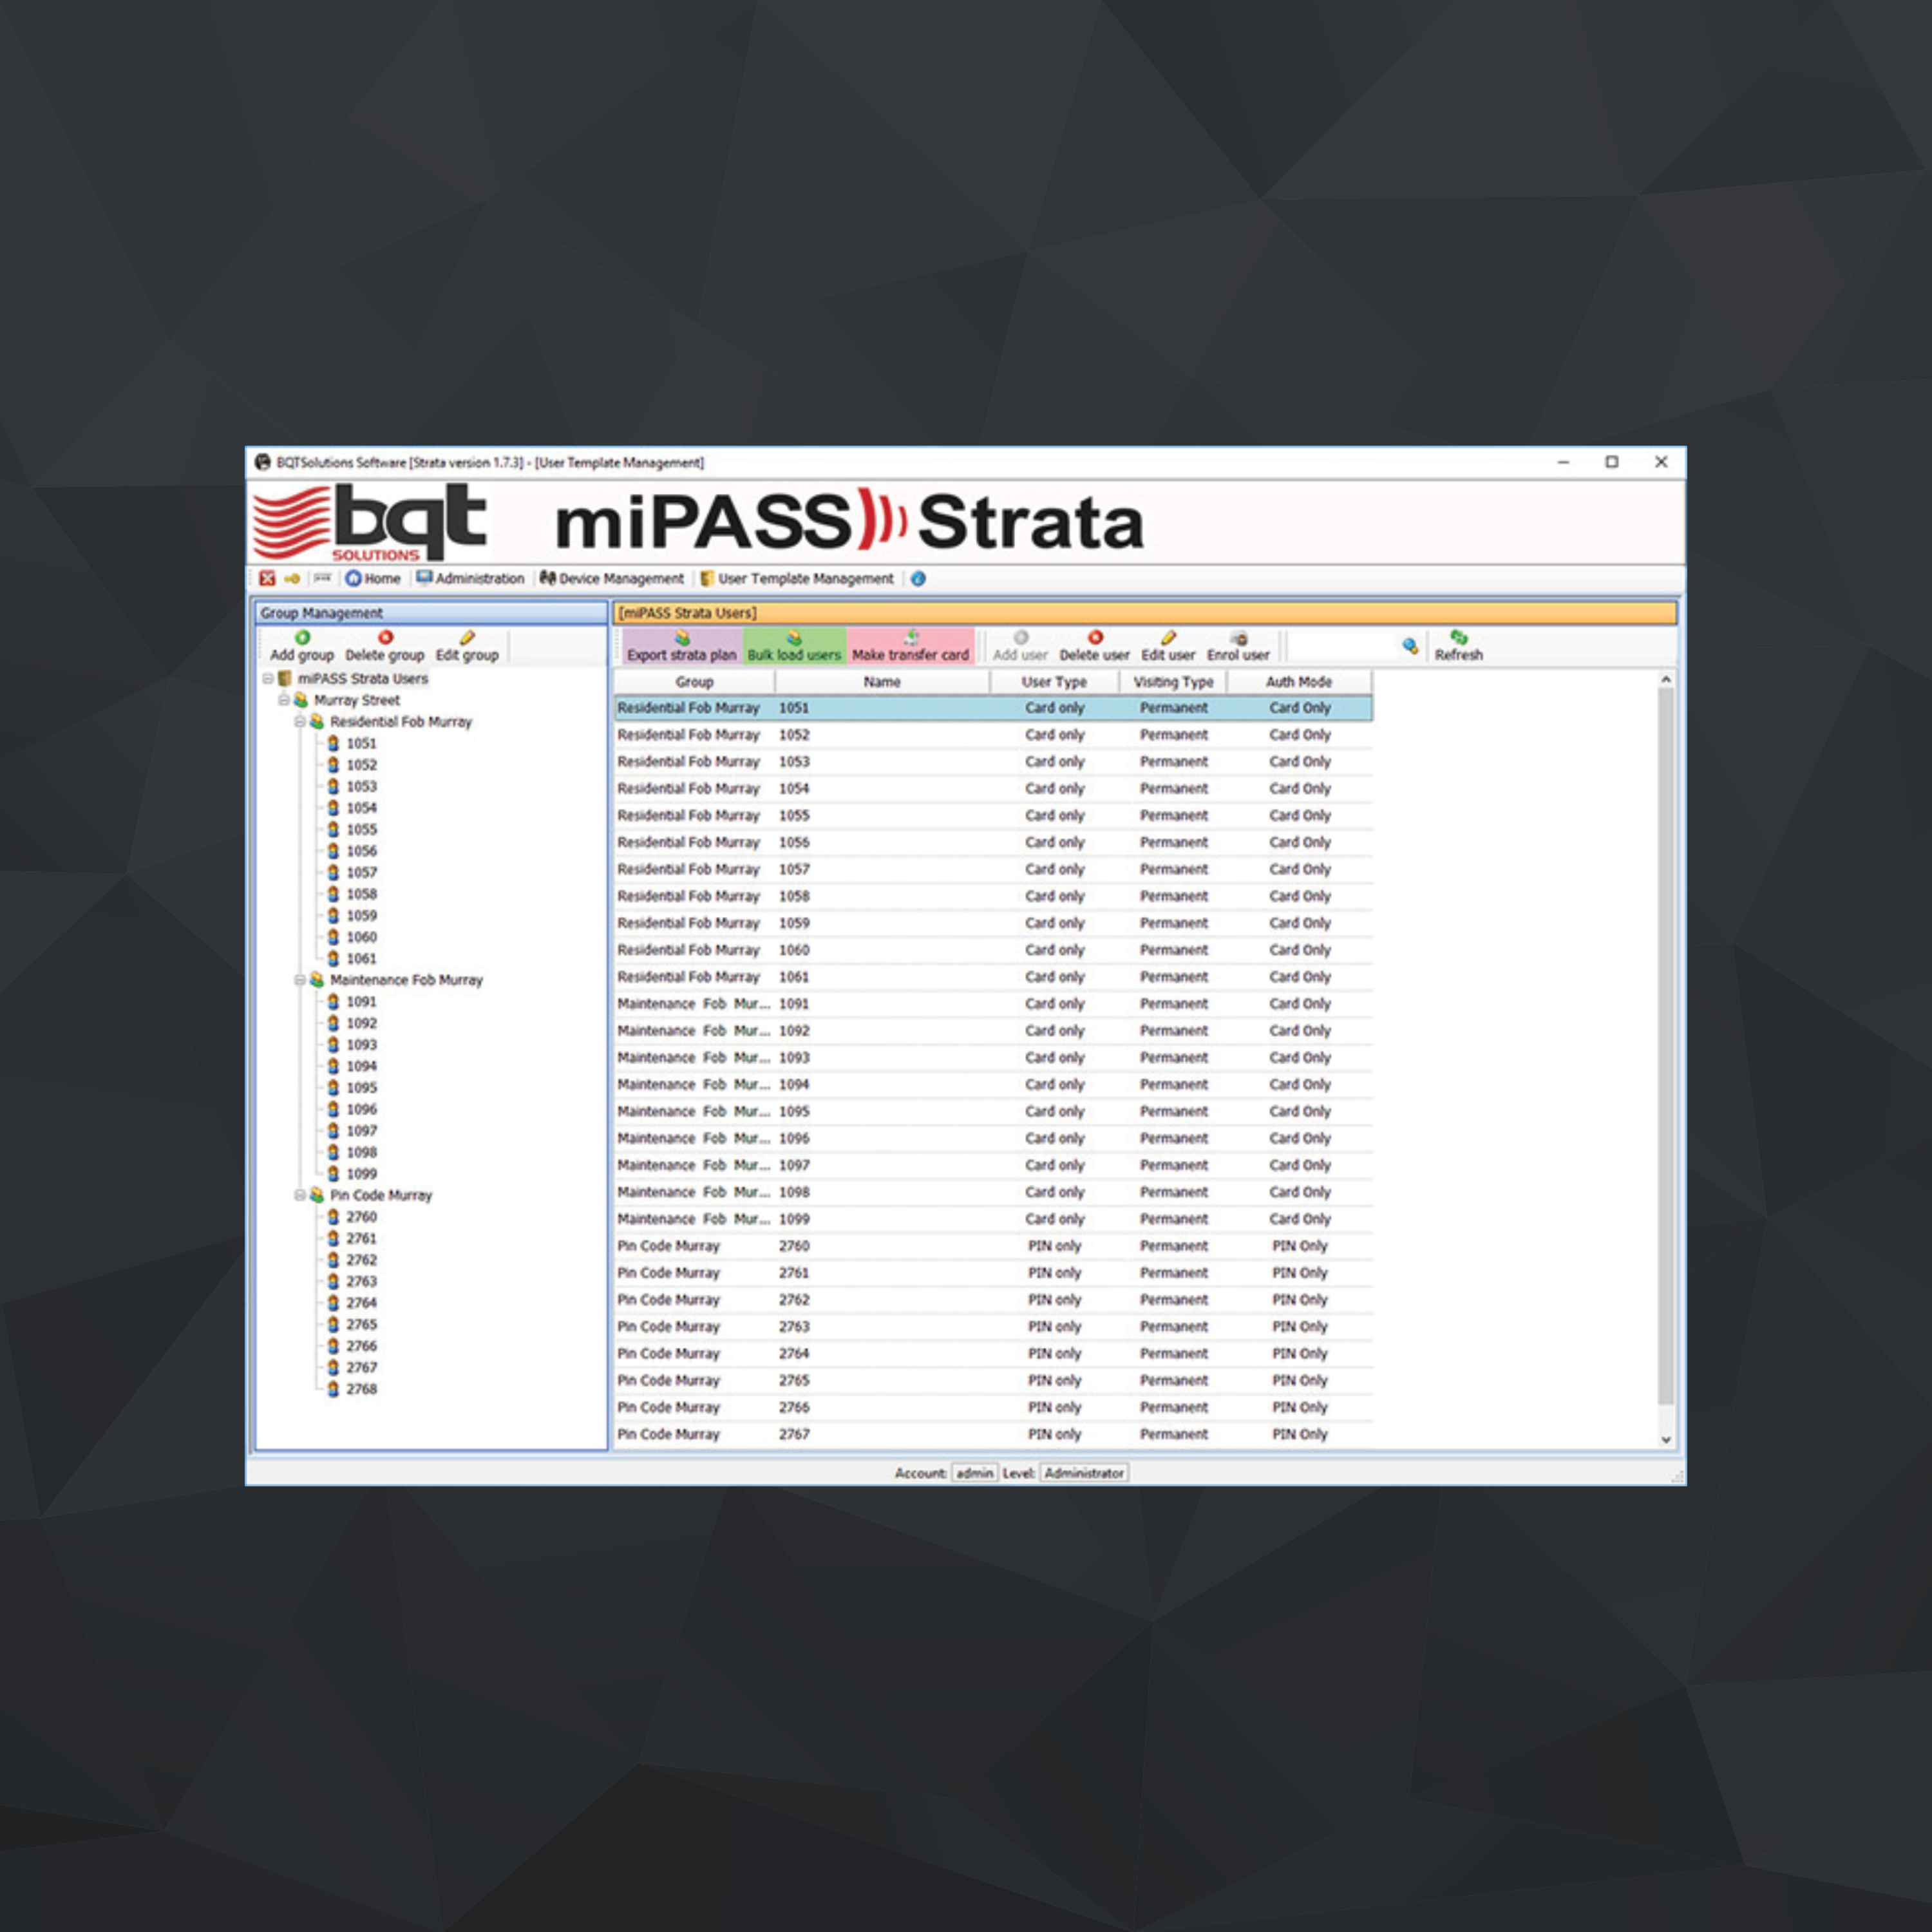 https://bqtsolutions.com/wp-content/uploads/2018/07/SOFTWARE-miPASS-Strata.png